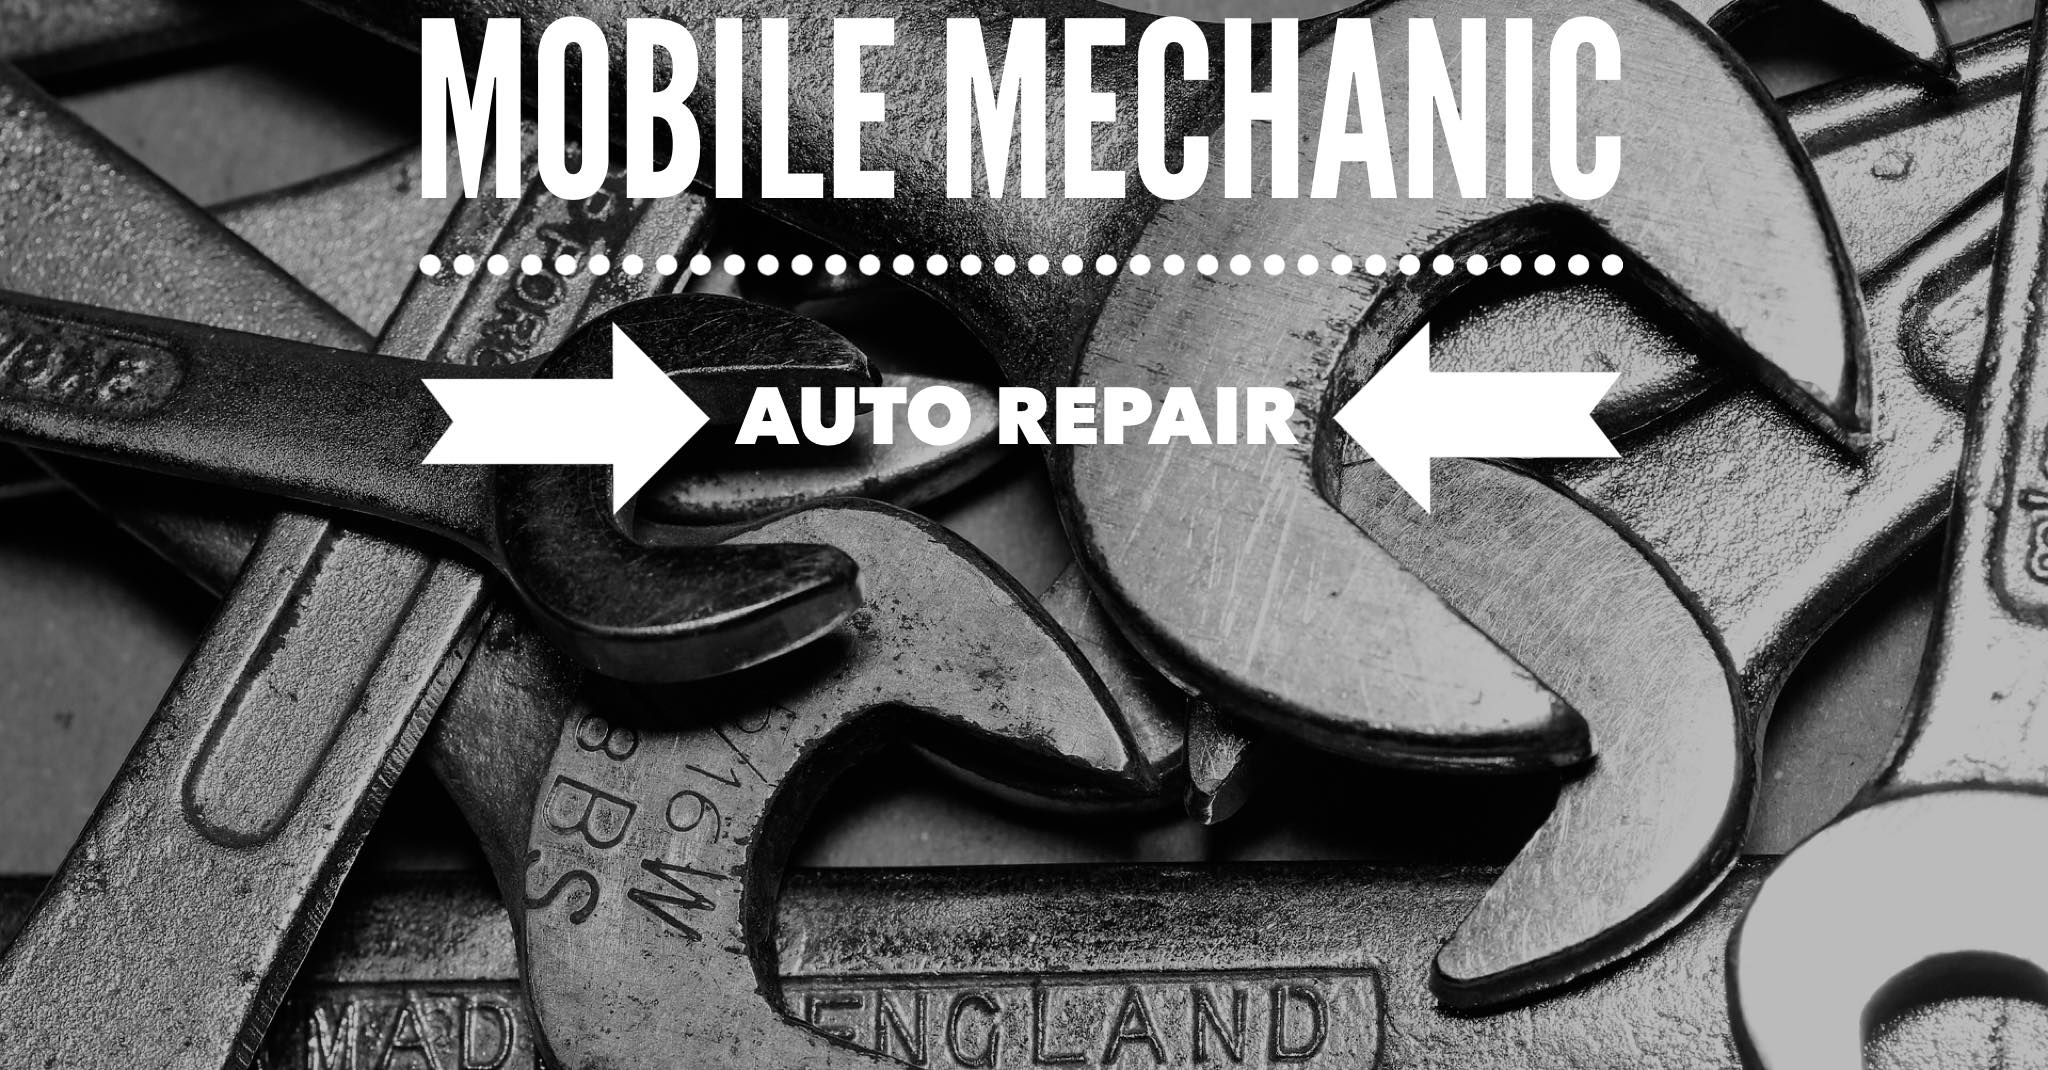 Inland Empire Mobile Mechanic